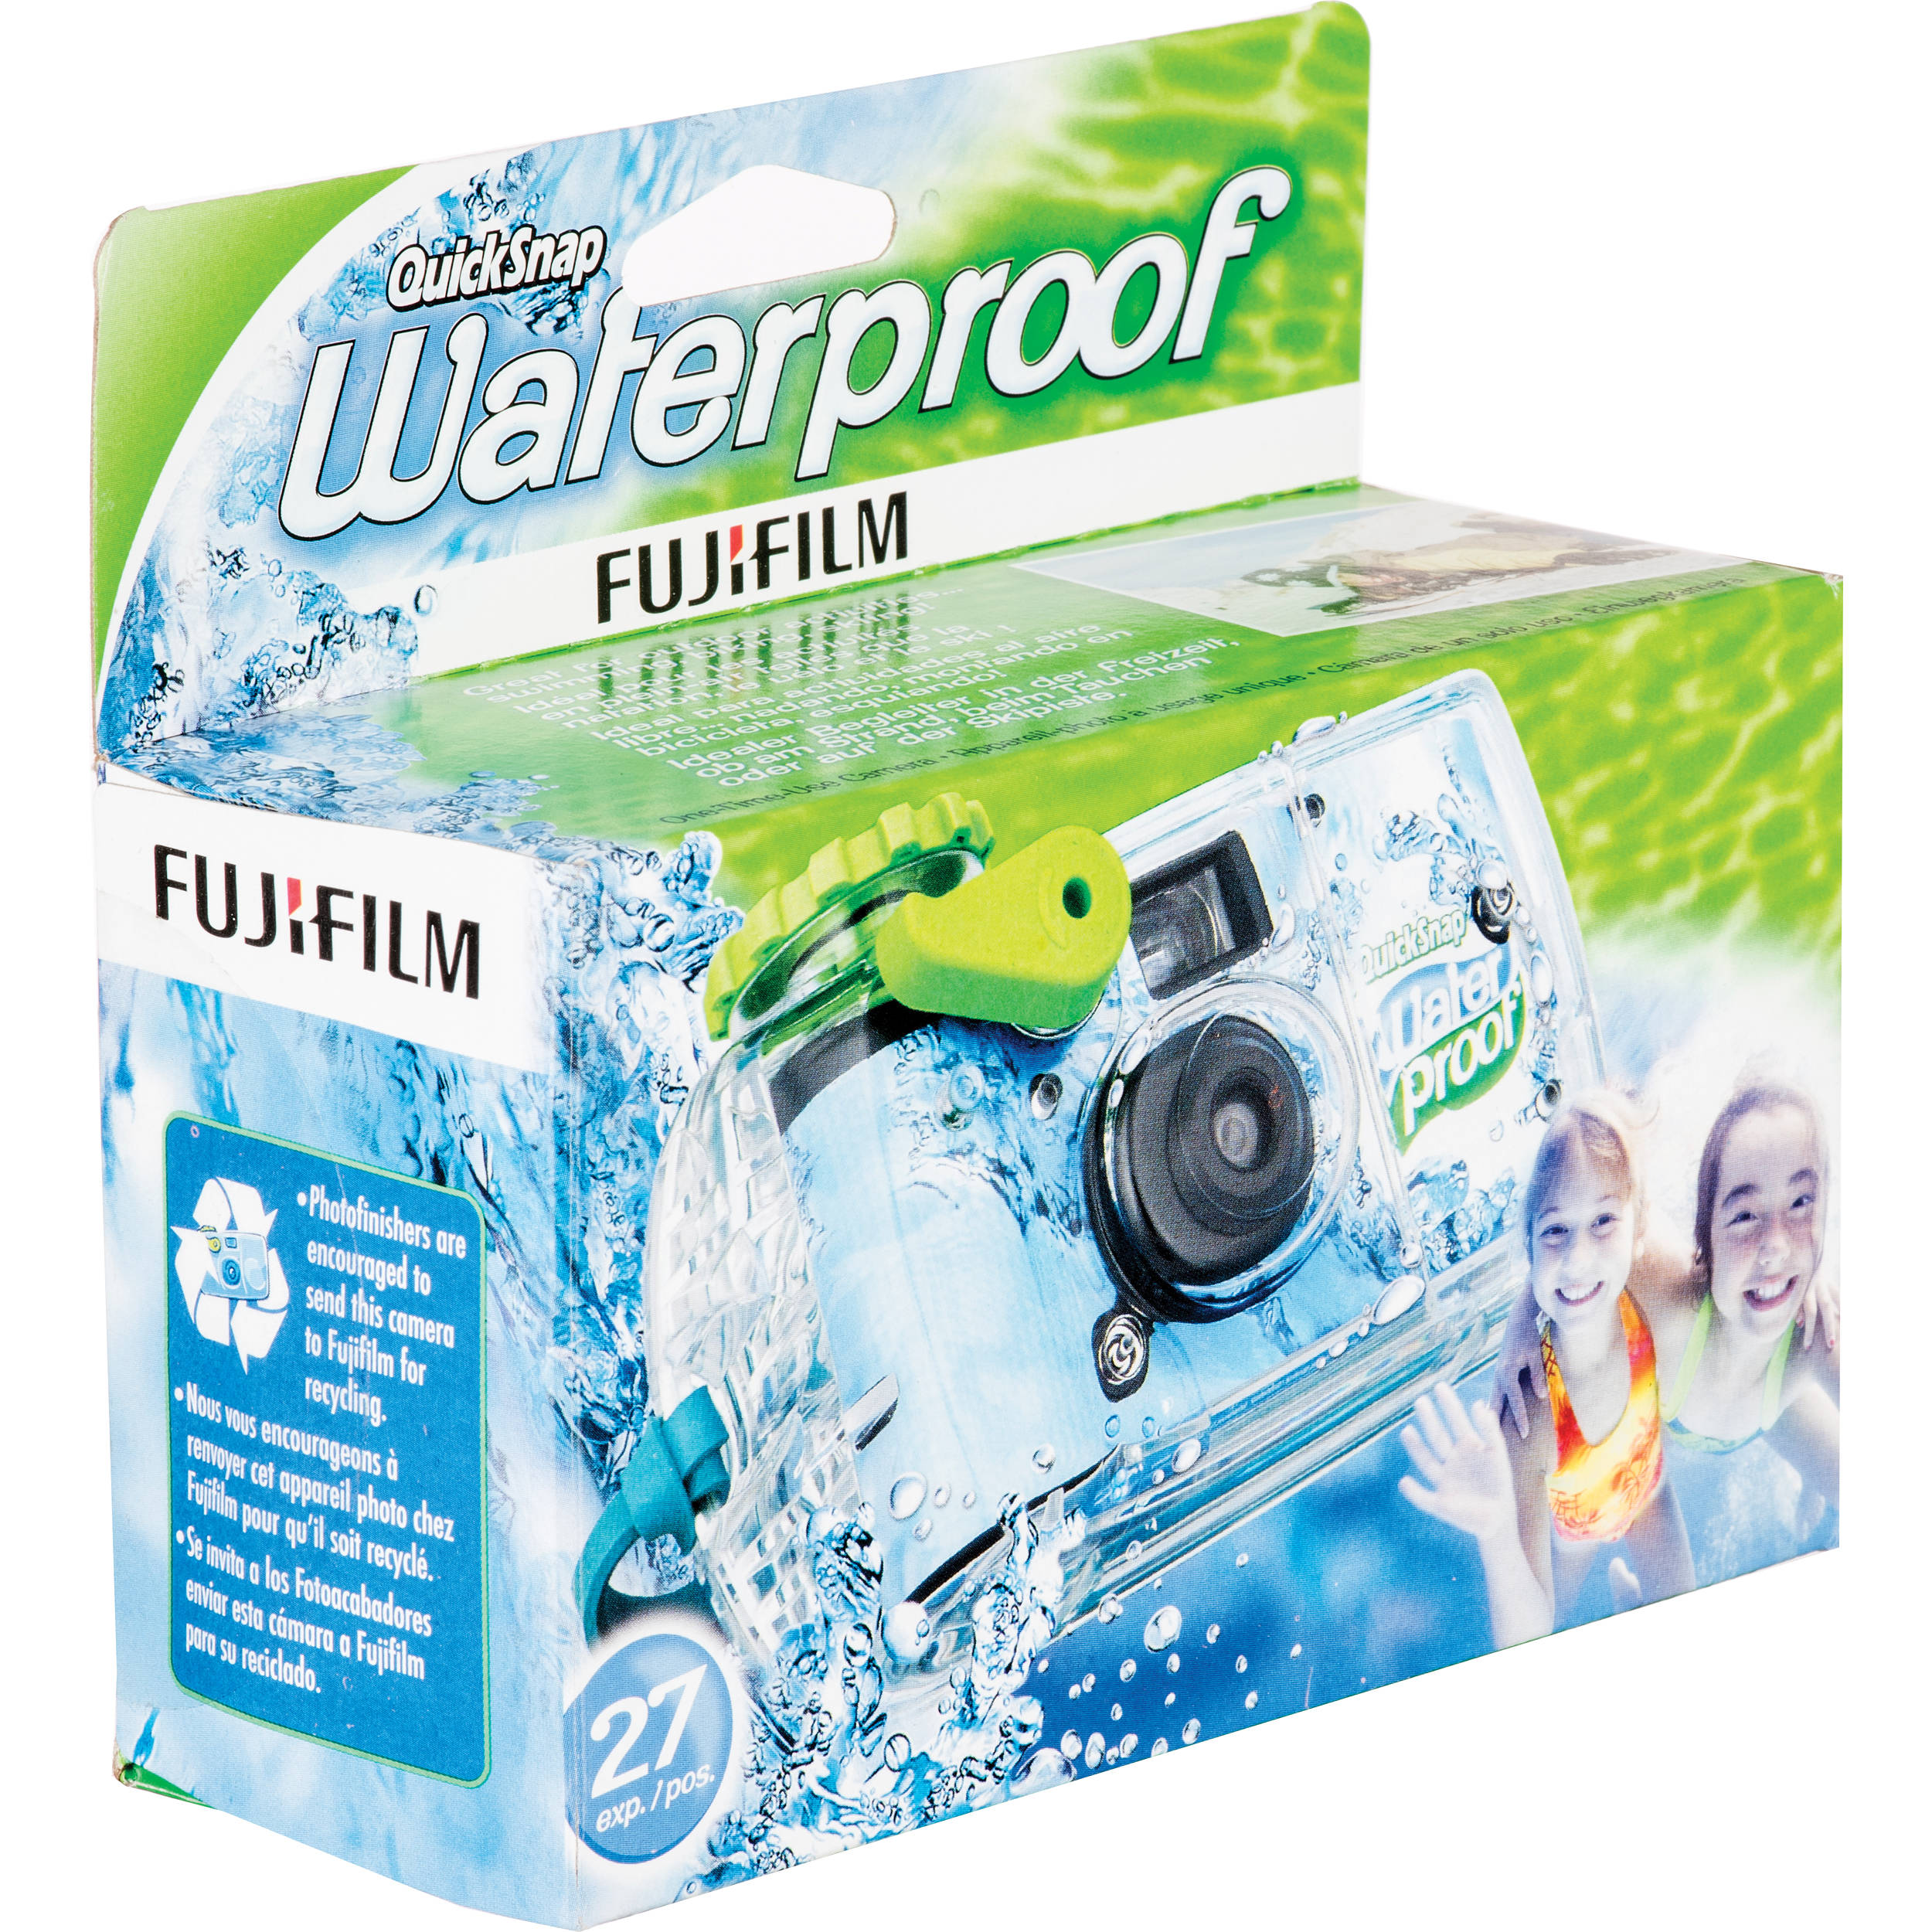 Fujifilm Quicksnap 800 Waterproof 35mm Disposable Camera